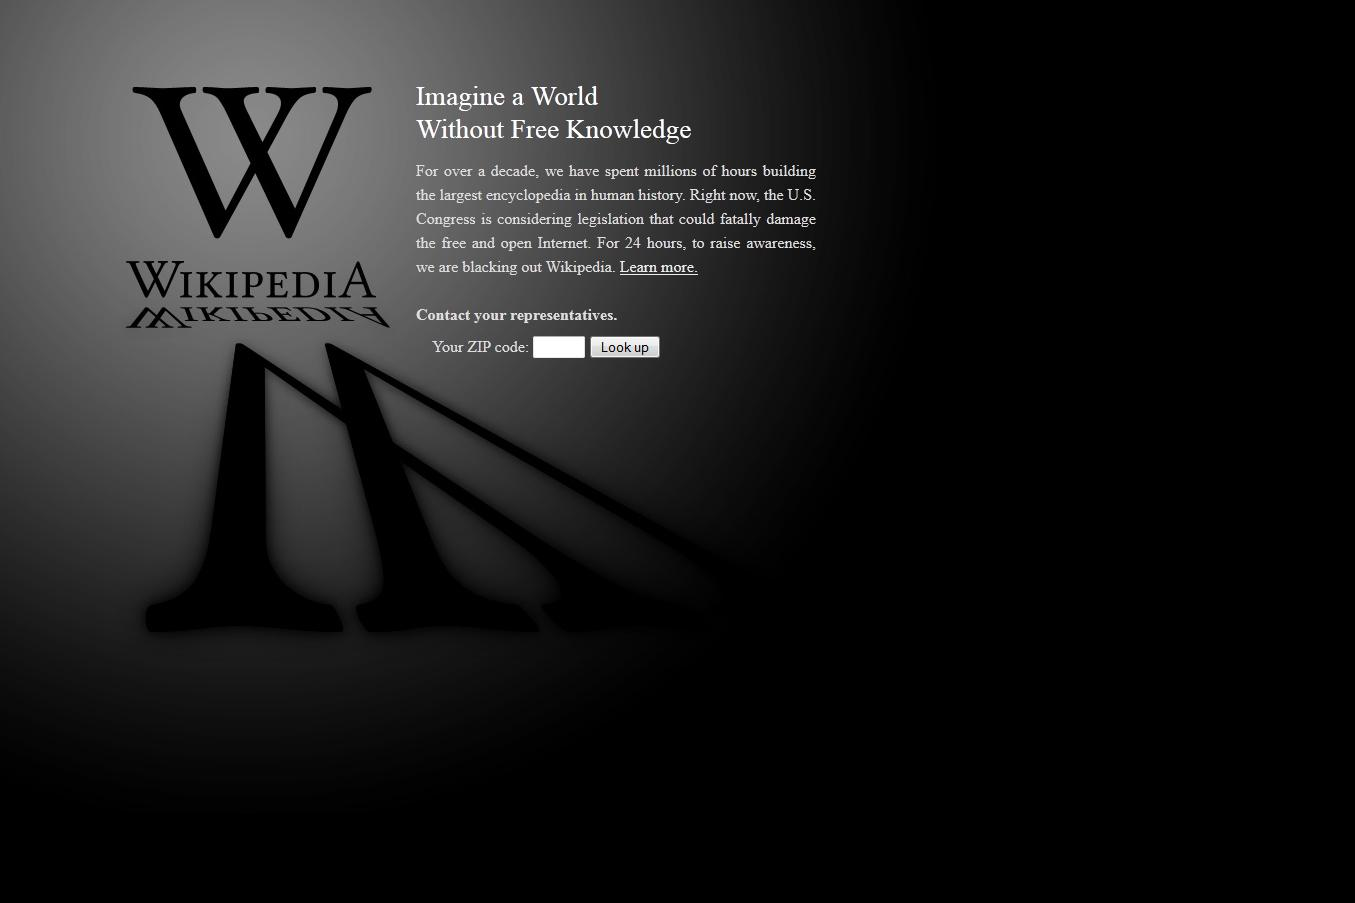 Best About Pages – Showcasing the best of the best about pages on the web » Wikipedia SOPA Blackout Page